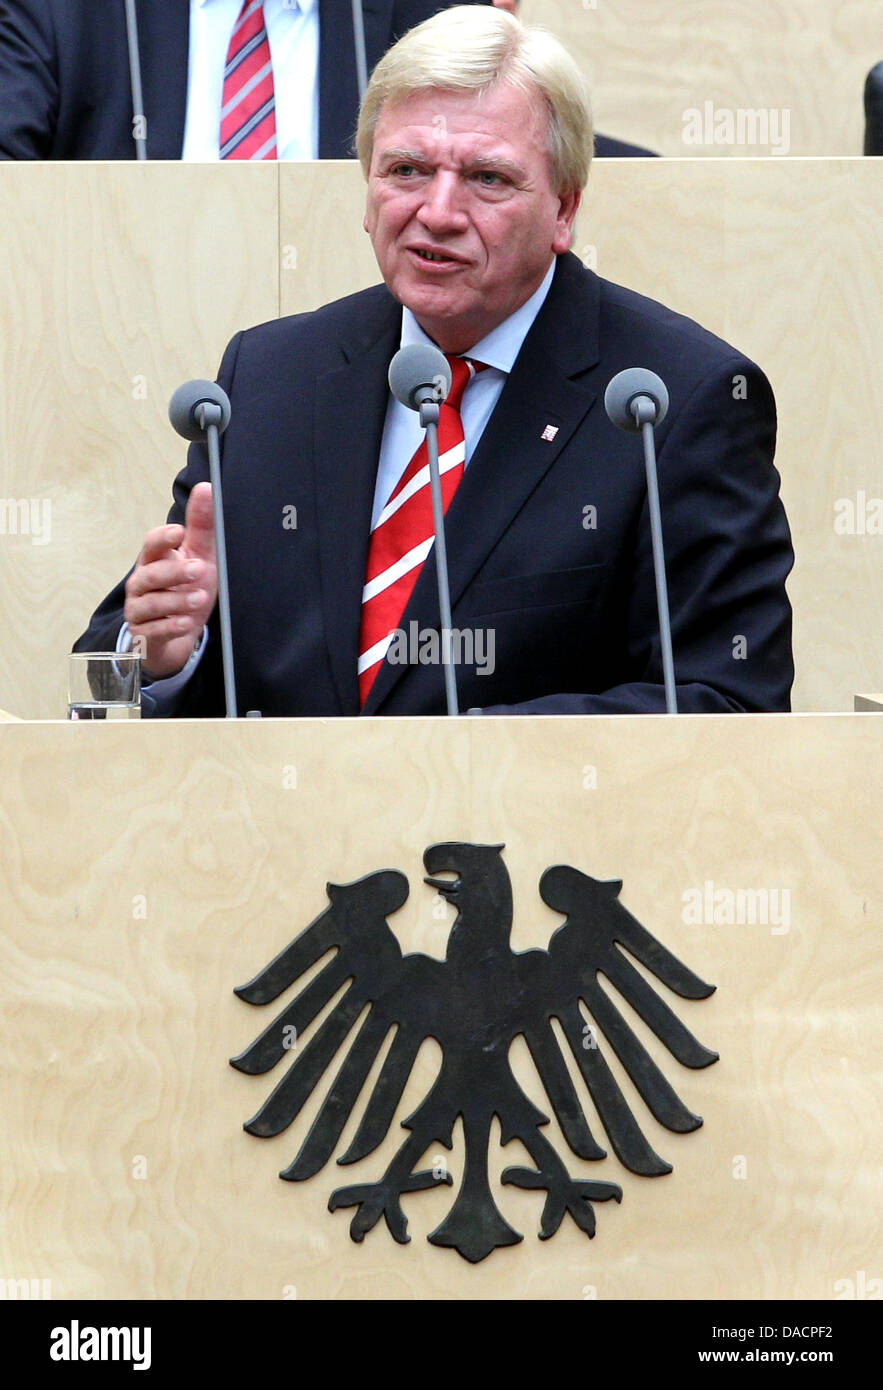 The Hessian Prime Minister Volker Bouffier speaks during an extracurricular session of the Bundesrat on the Euro Stock Photo